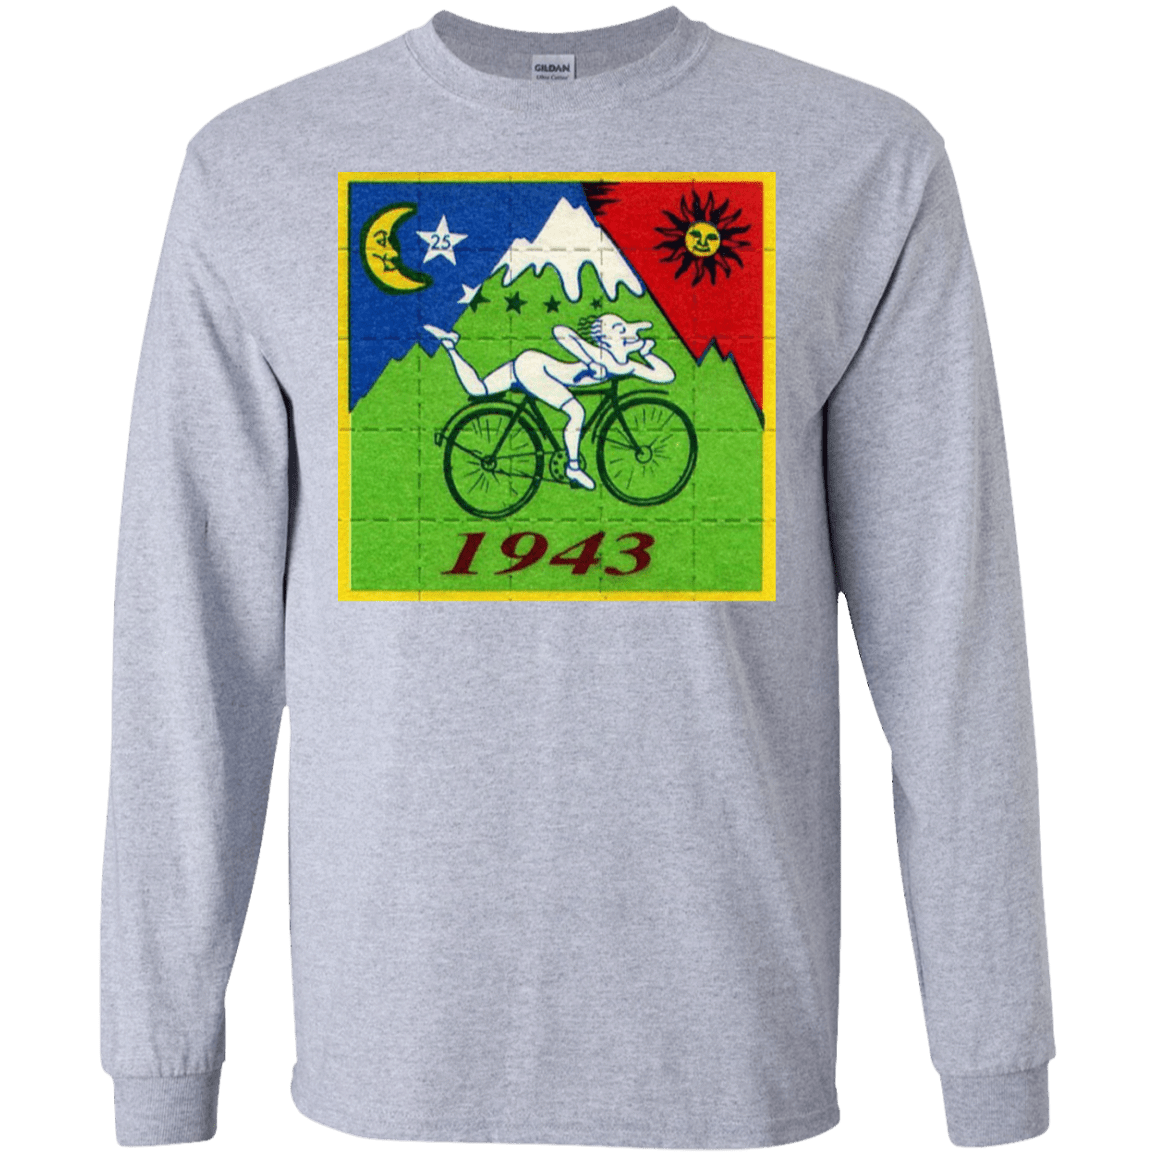 Bicycle Day 30-188-73565657-335 - Tee Ript